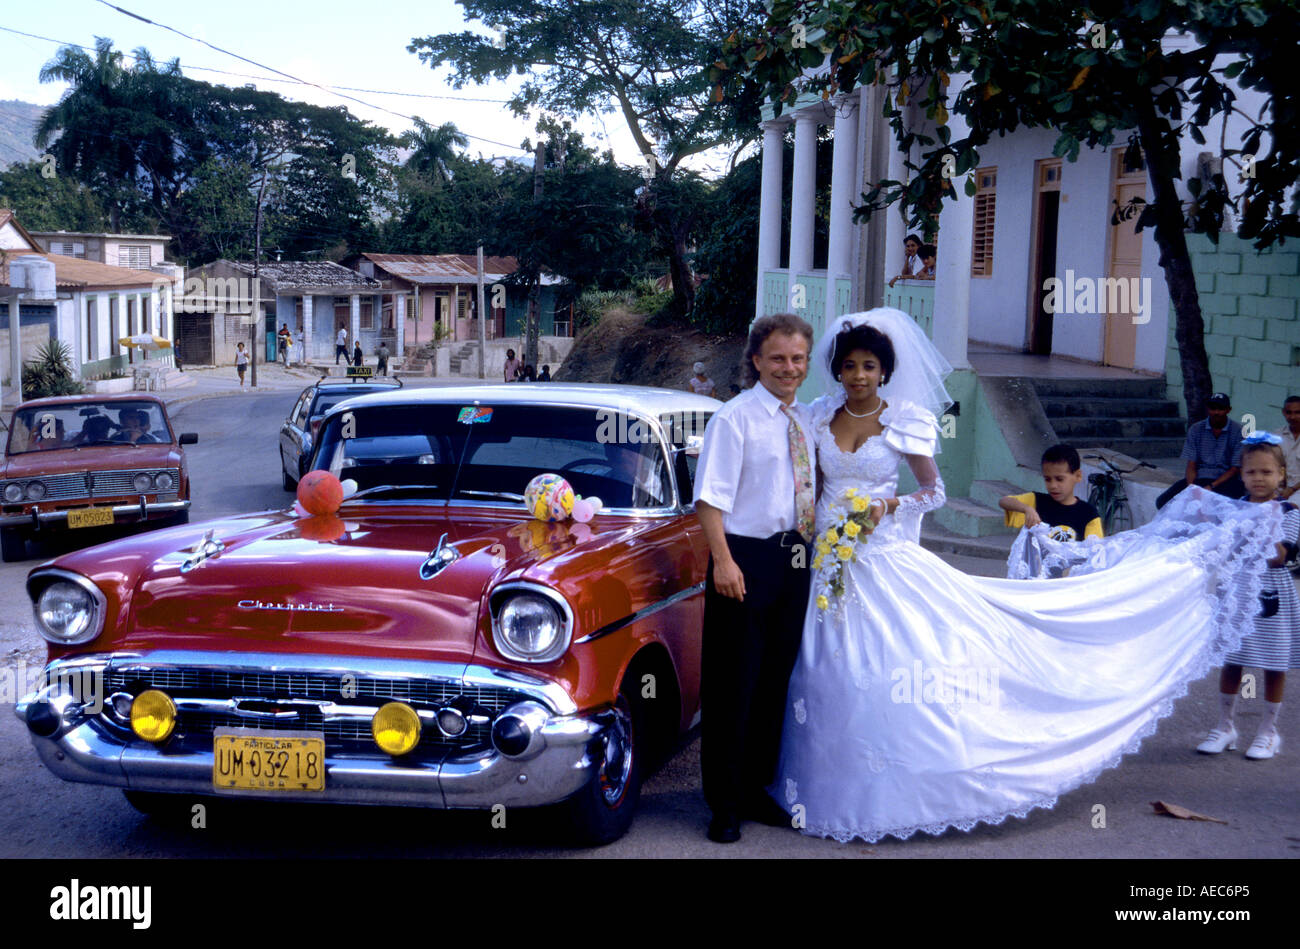 wedding, marriage man woman Havana Cars old timer Transport Havana ...